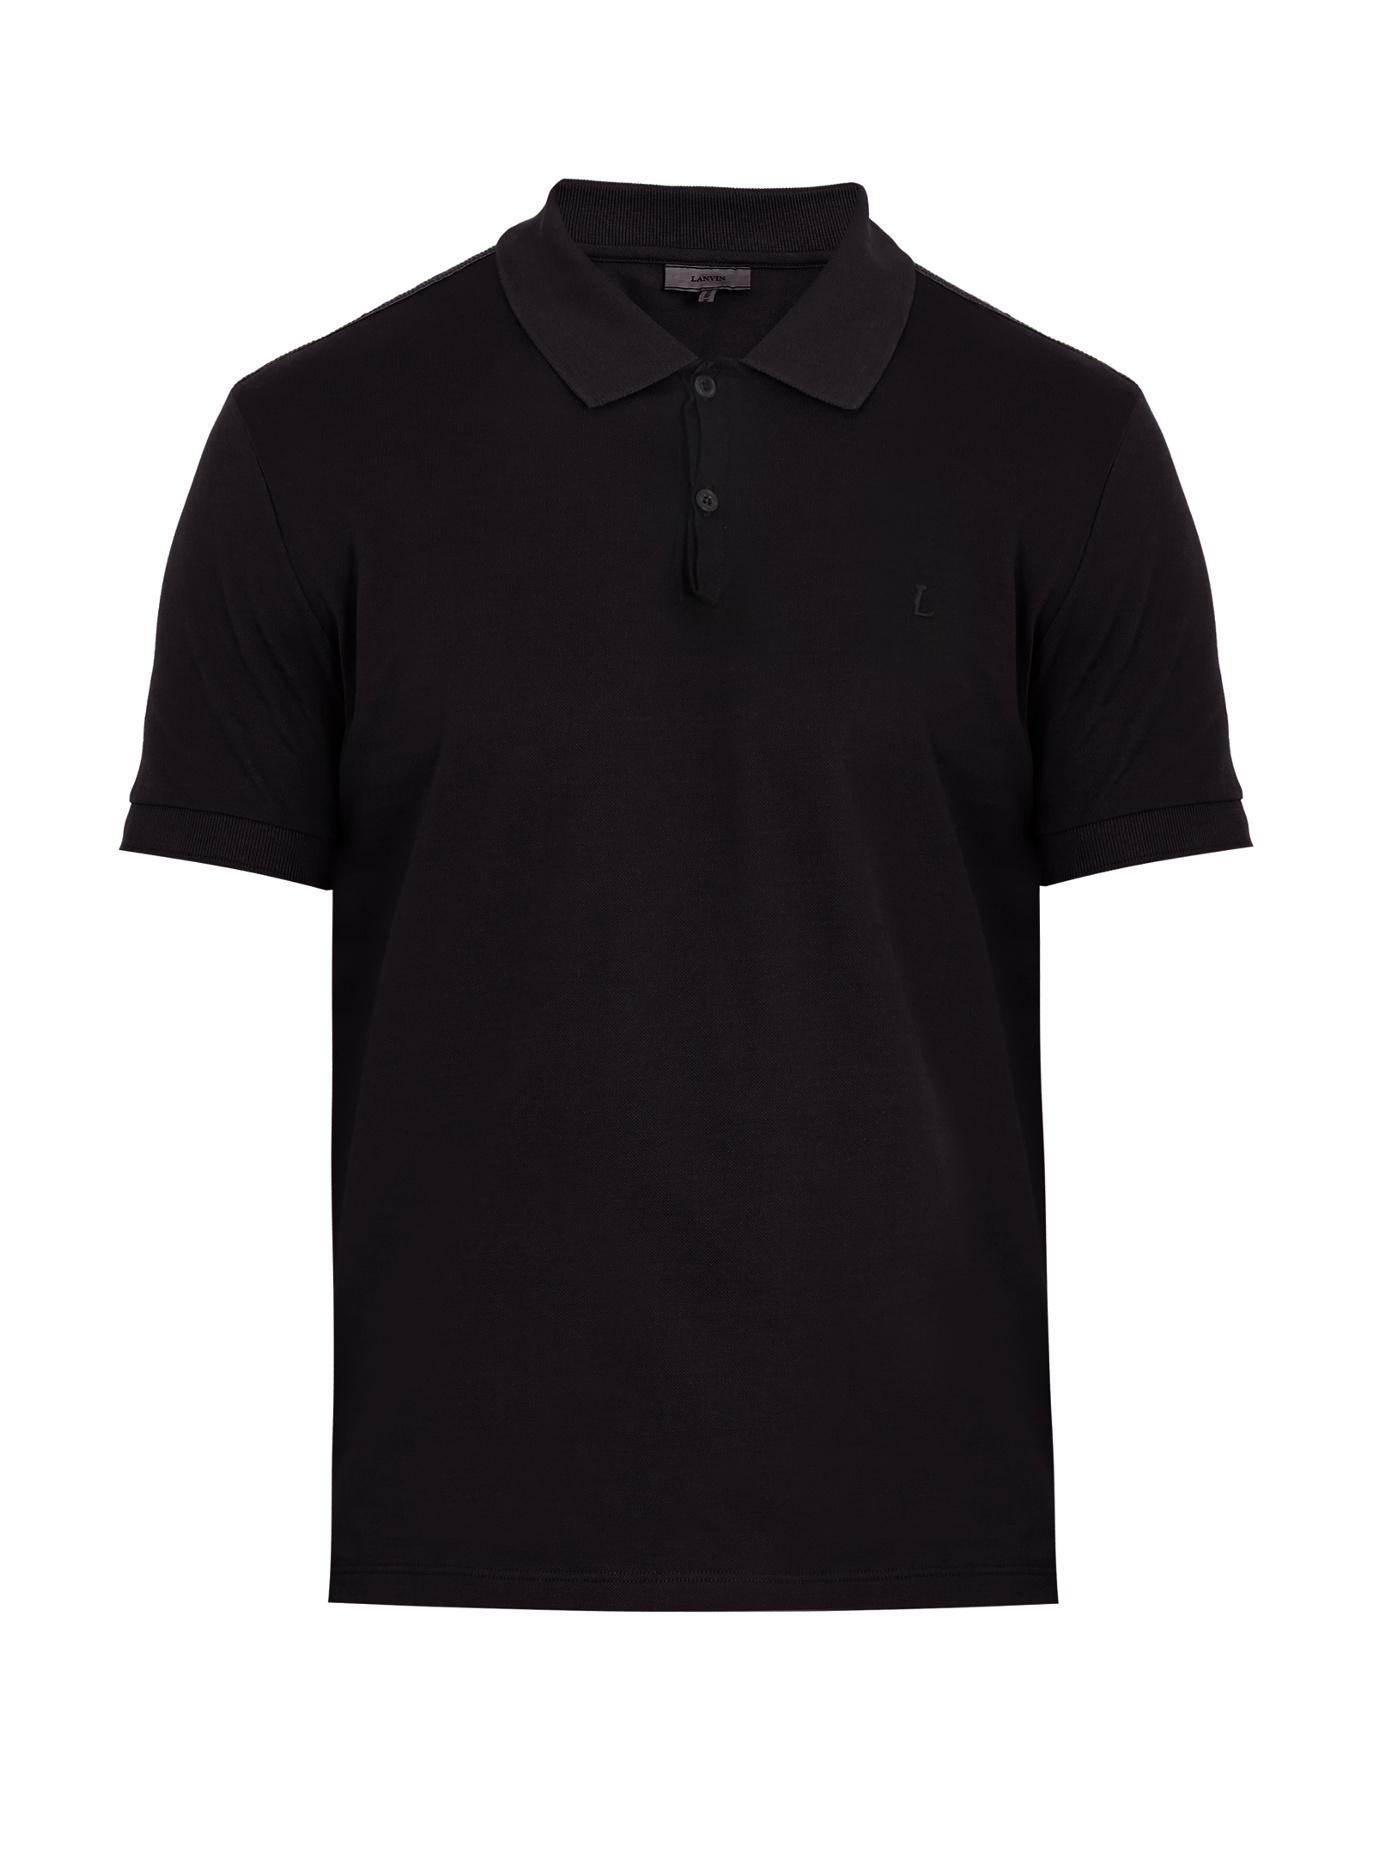 Lyst lanvin logo embroidered cotton polo shirt in black for Cotton polo shirts with logo